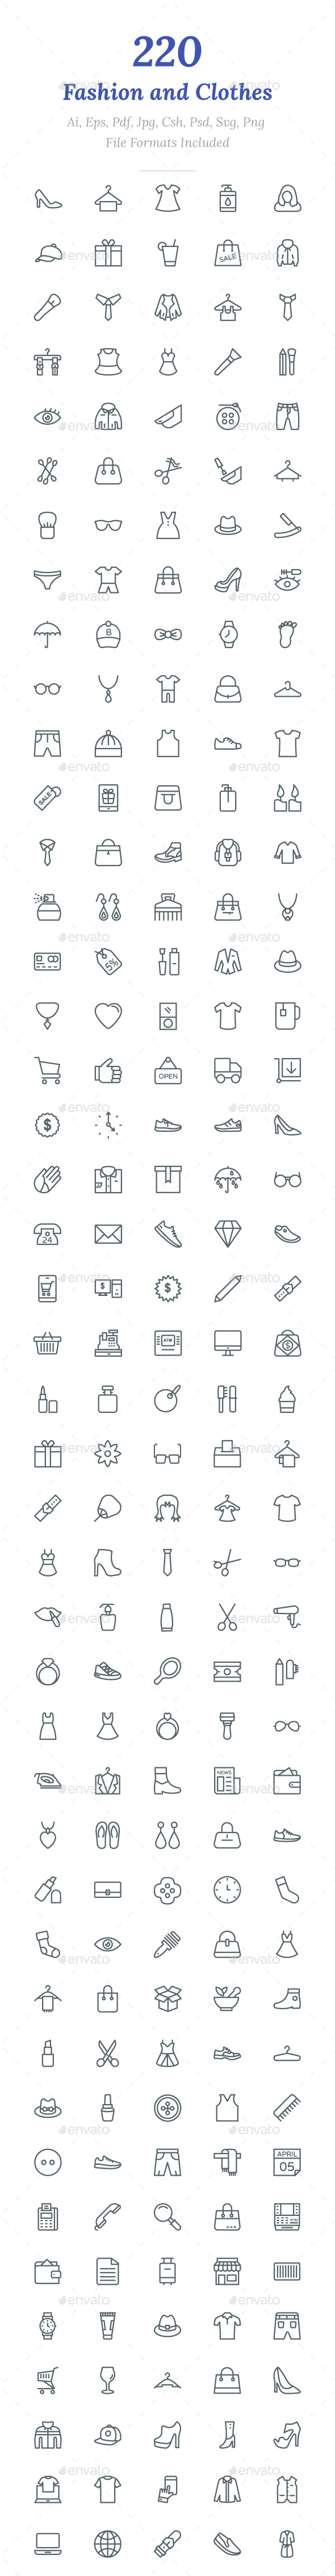 GraphicRiver 220 Fashion and Clothes Line Icons 20704162